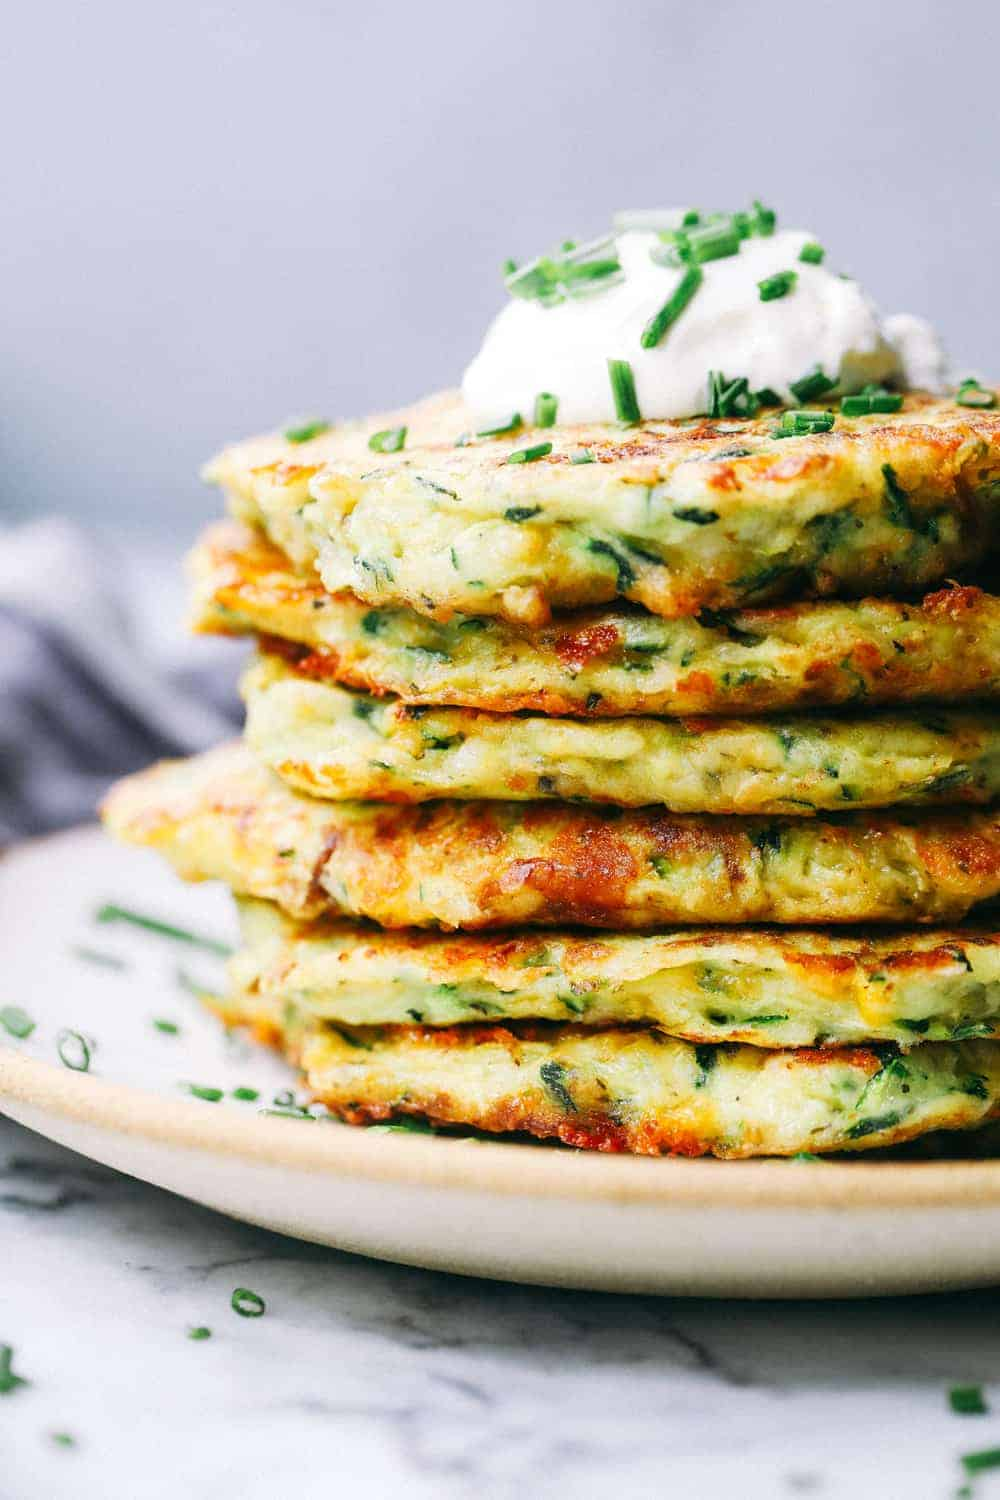 Tasty zucchini fritters - quick and easy cooking recipes 20